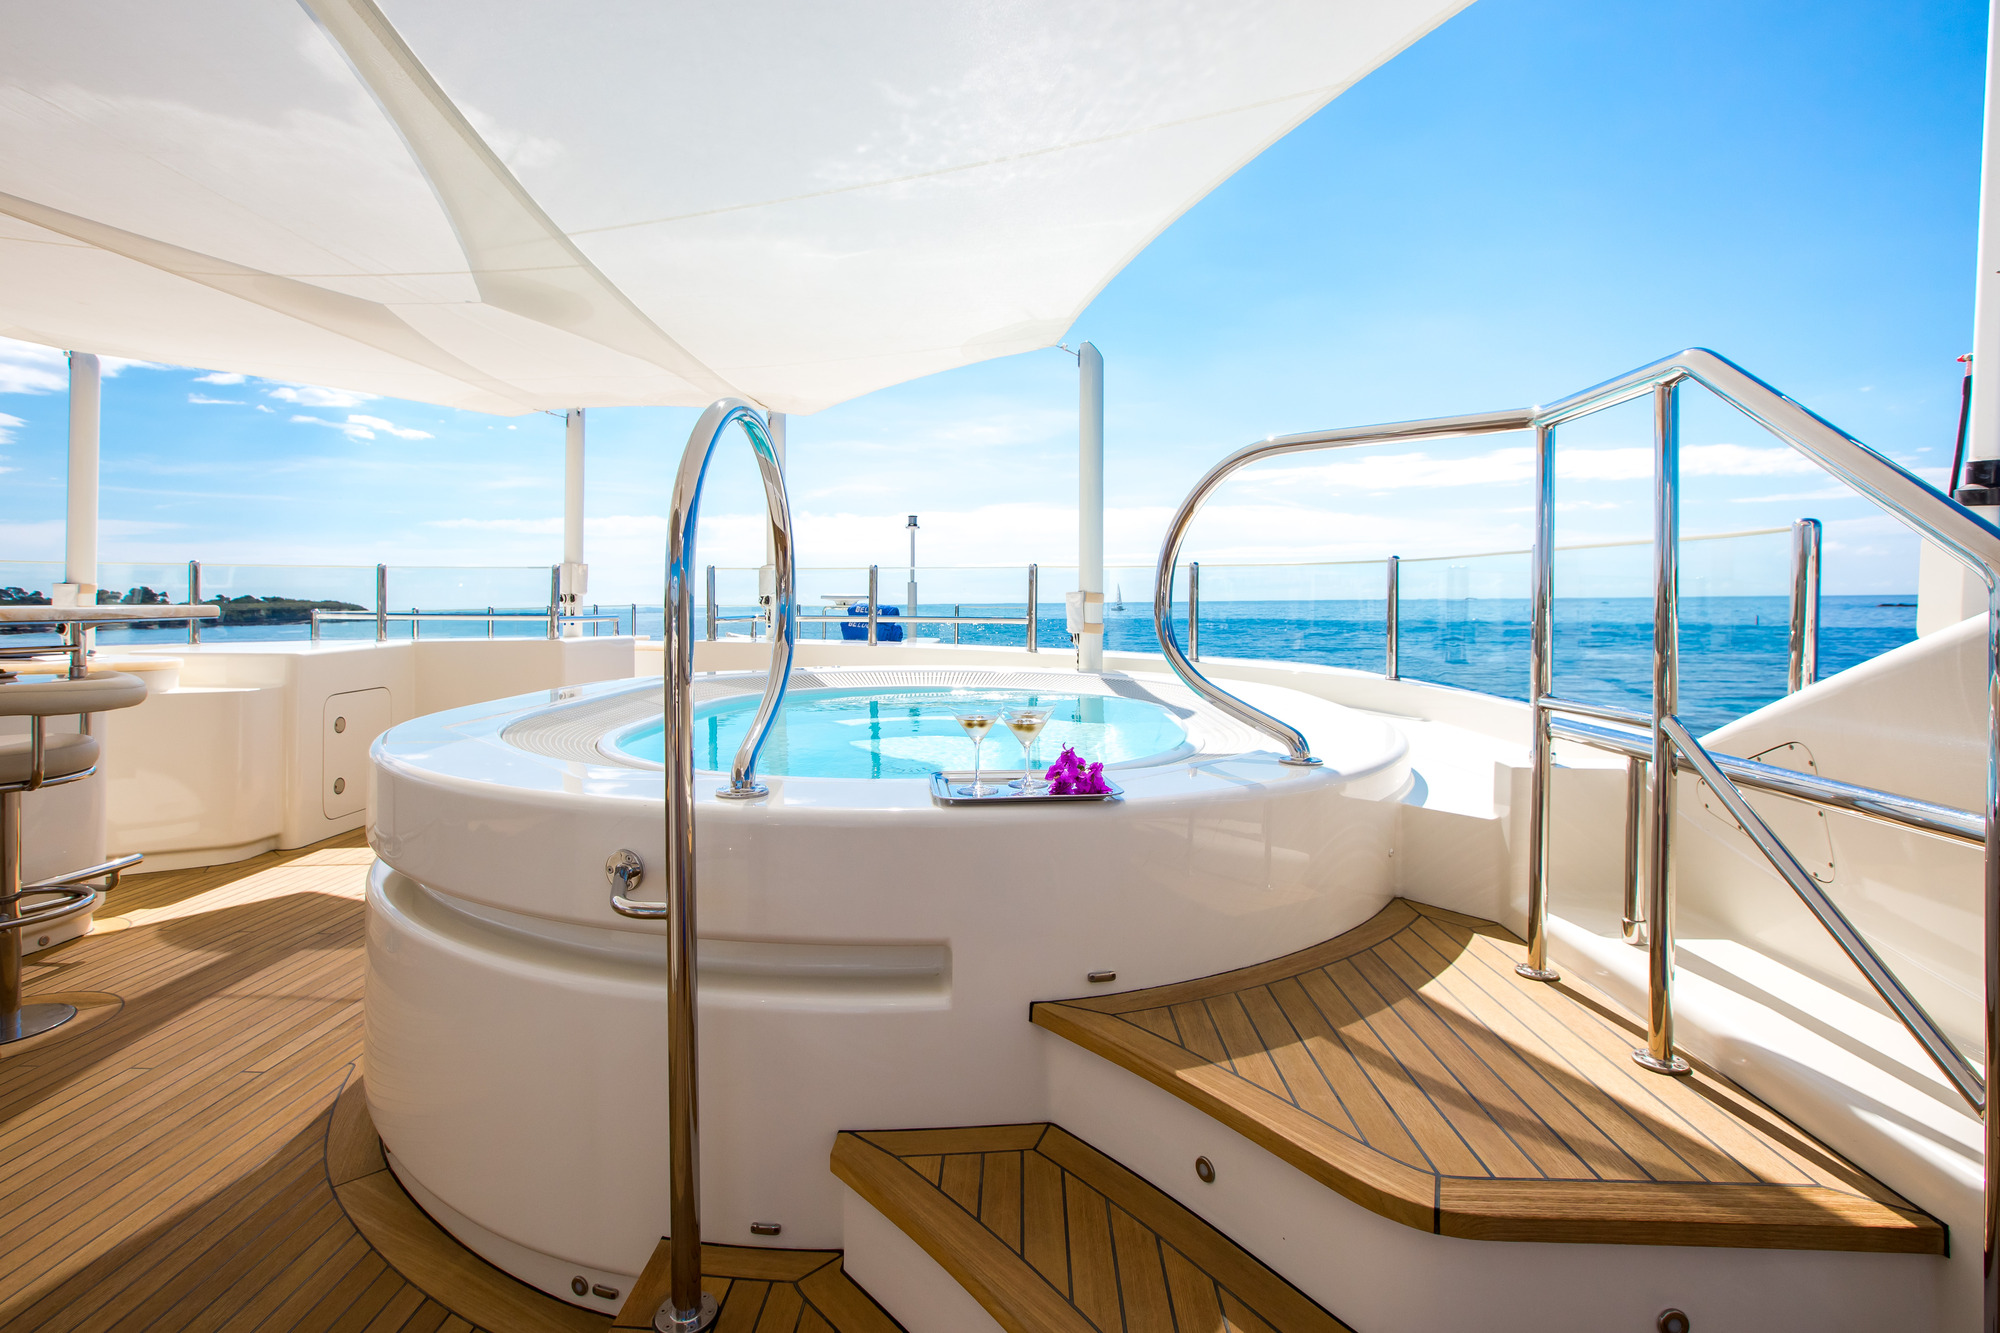 Jacuzzi aboard superyacht Beluga - great addition to any charter vacation